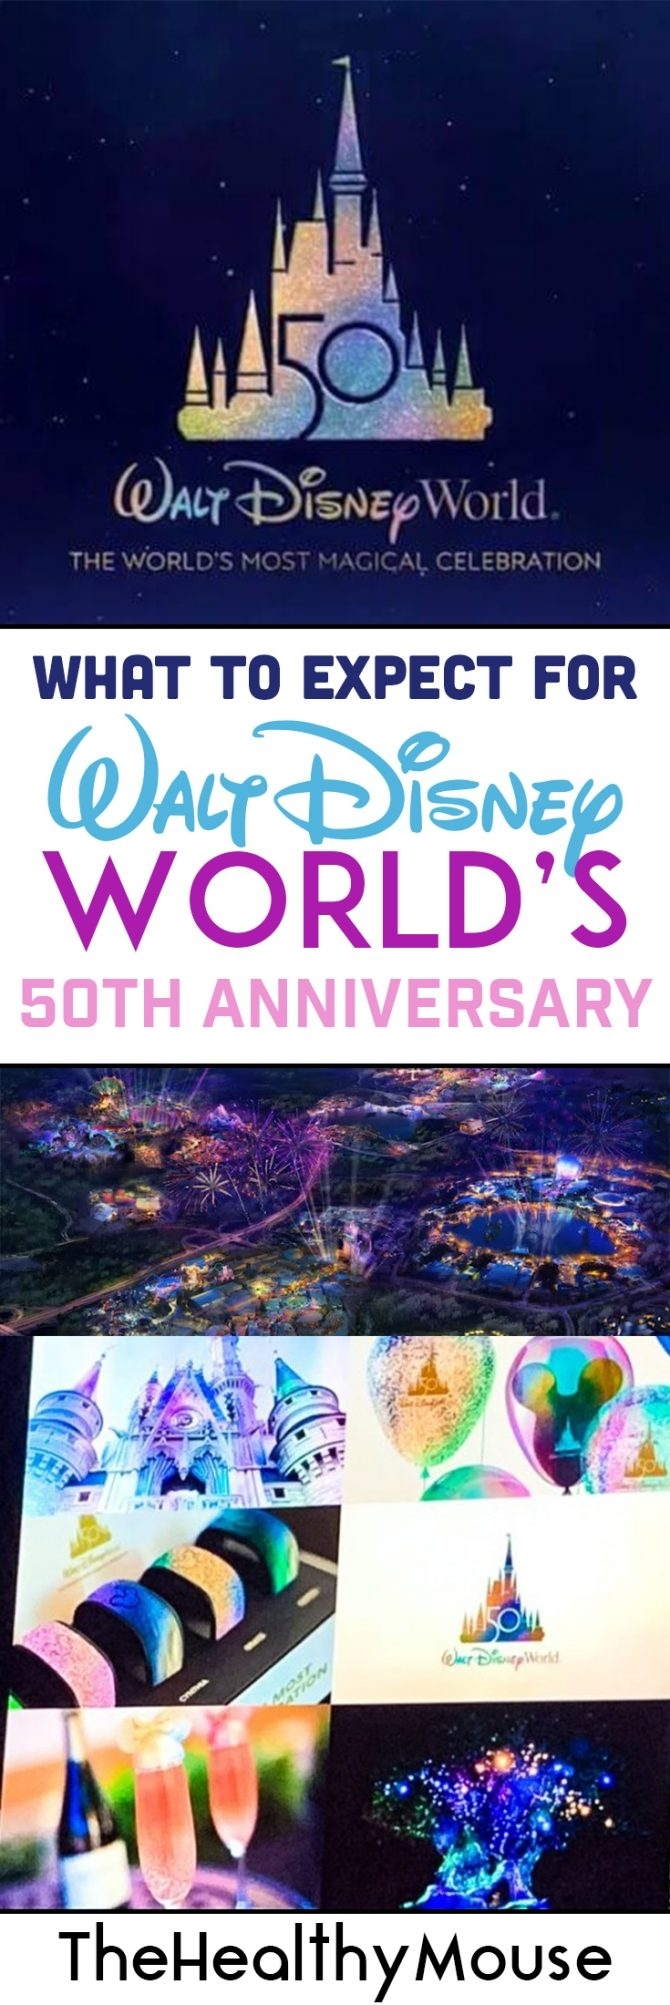 Catch Disney World Itinerary 2021